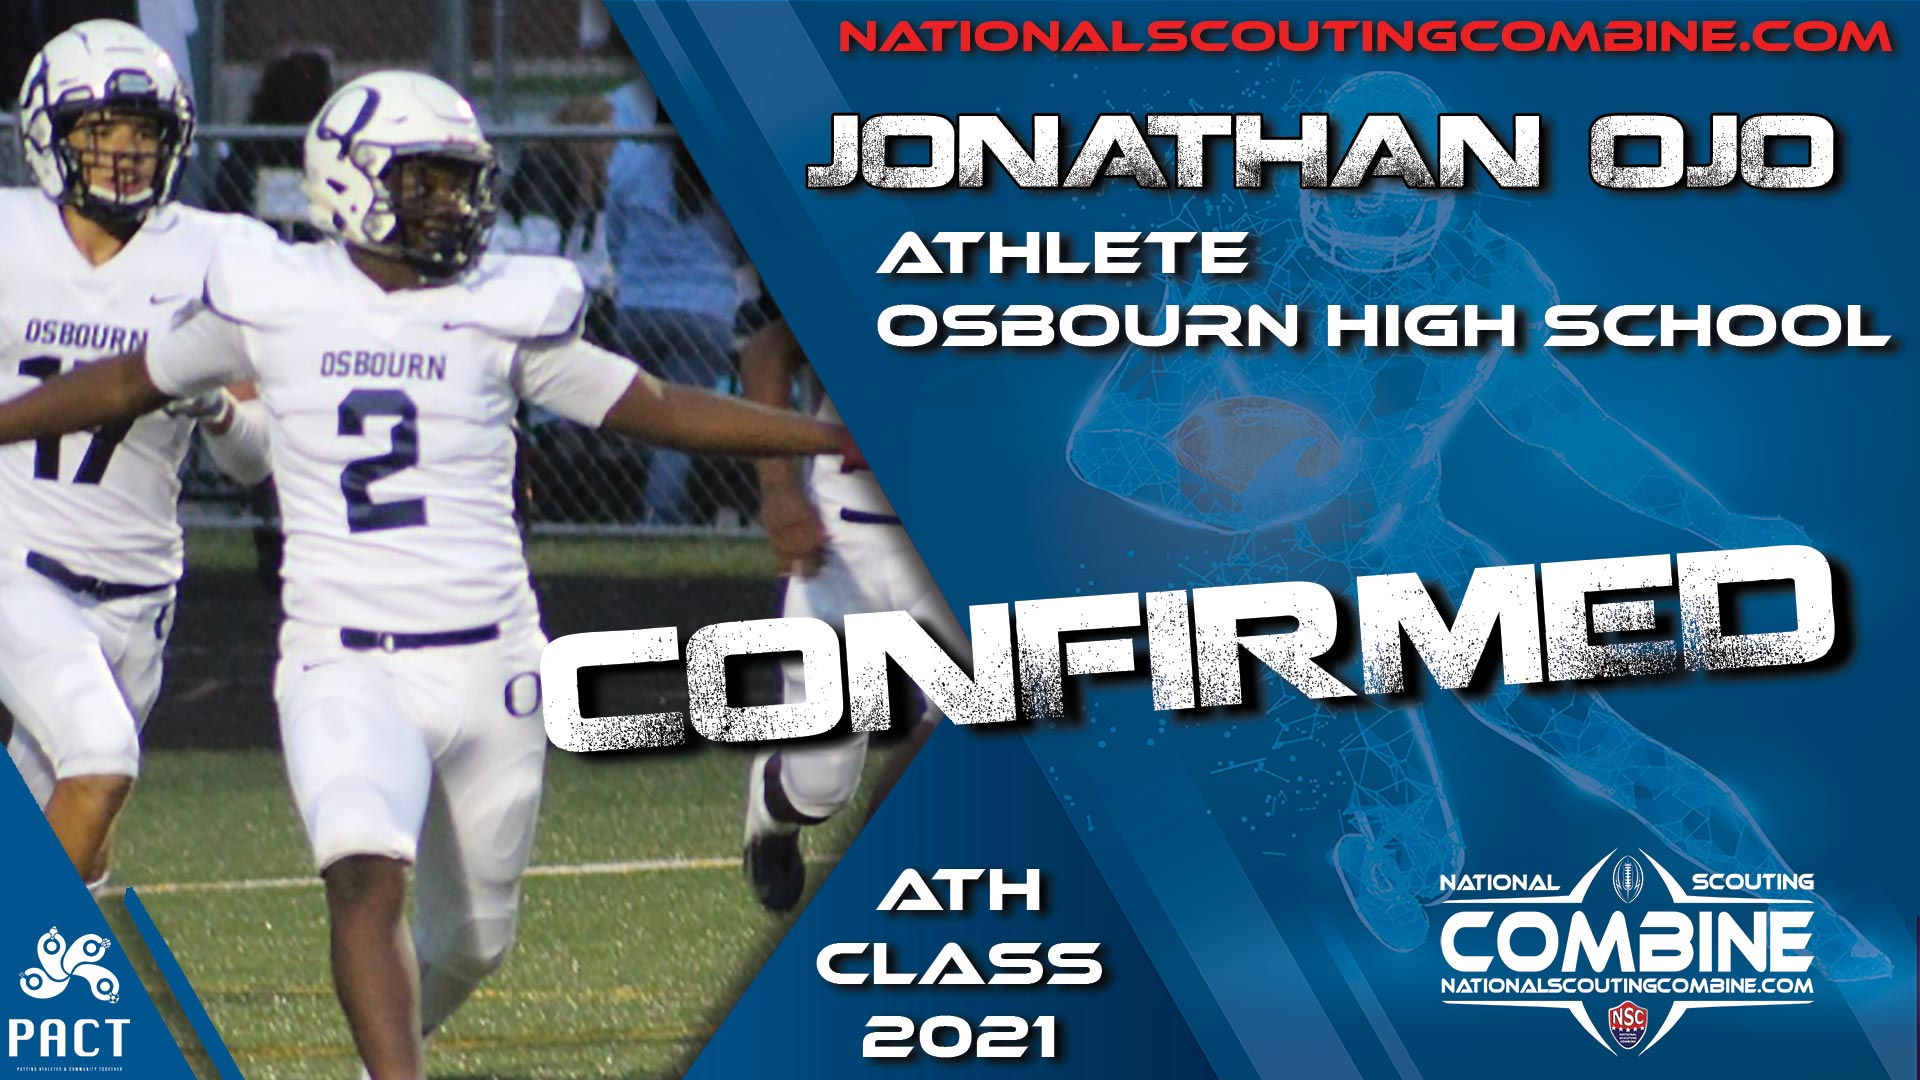 National Scouting Combine 2021 Prospect Jonathan Ojo, ATH from Osbourn High School